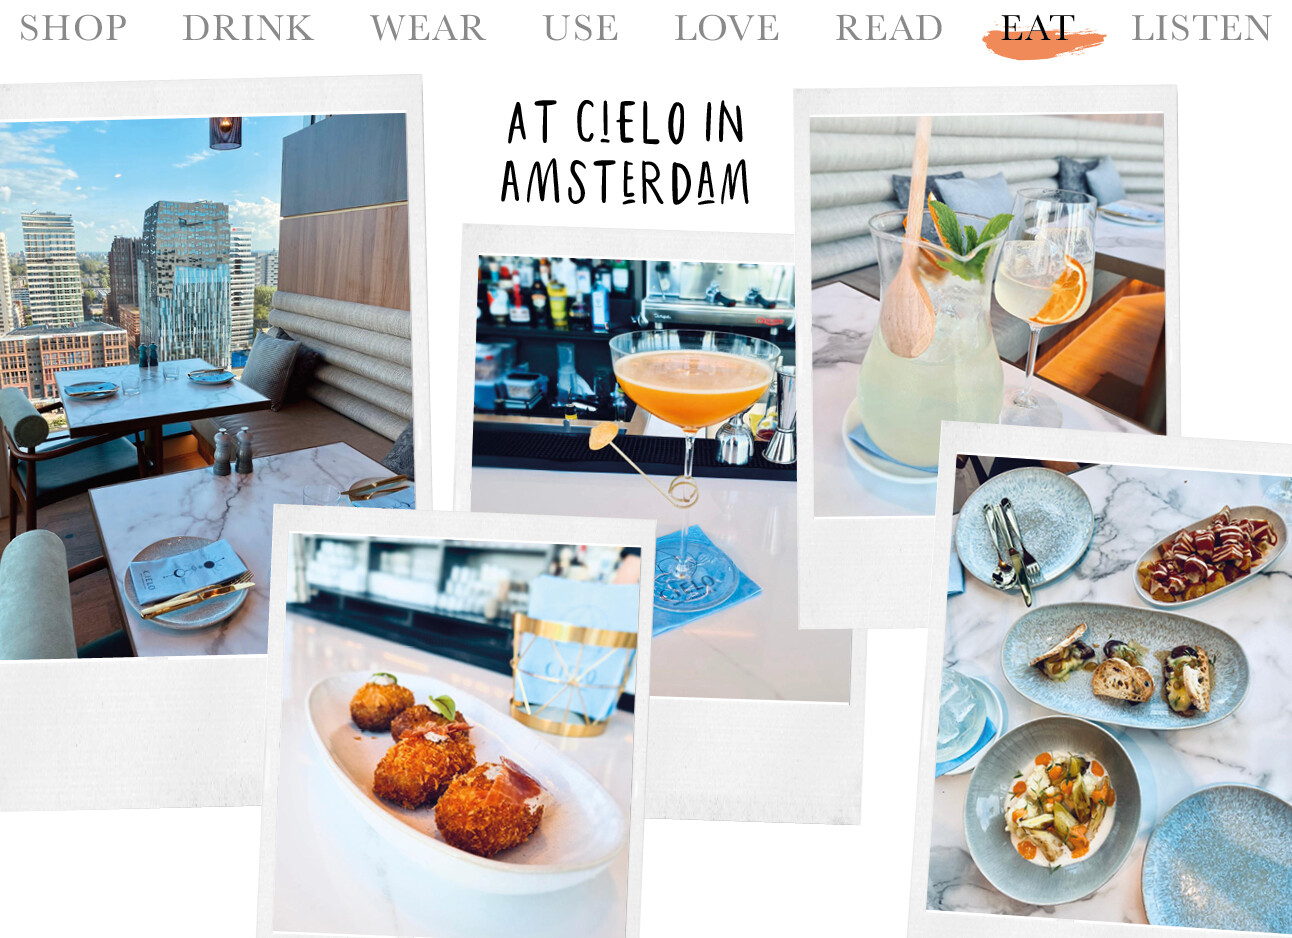 Today we eat at silo Amsterdam